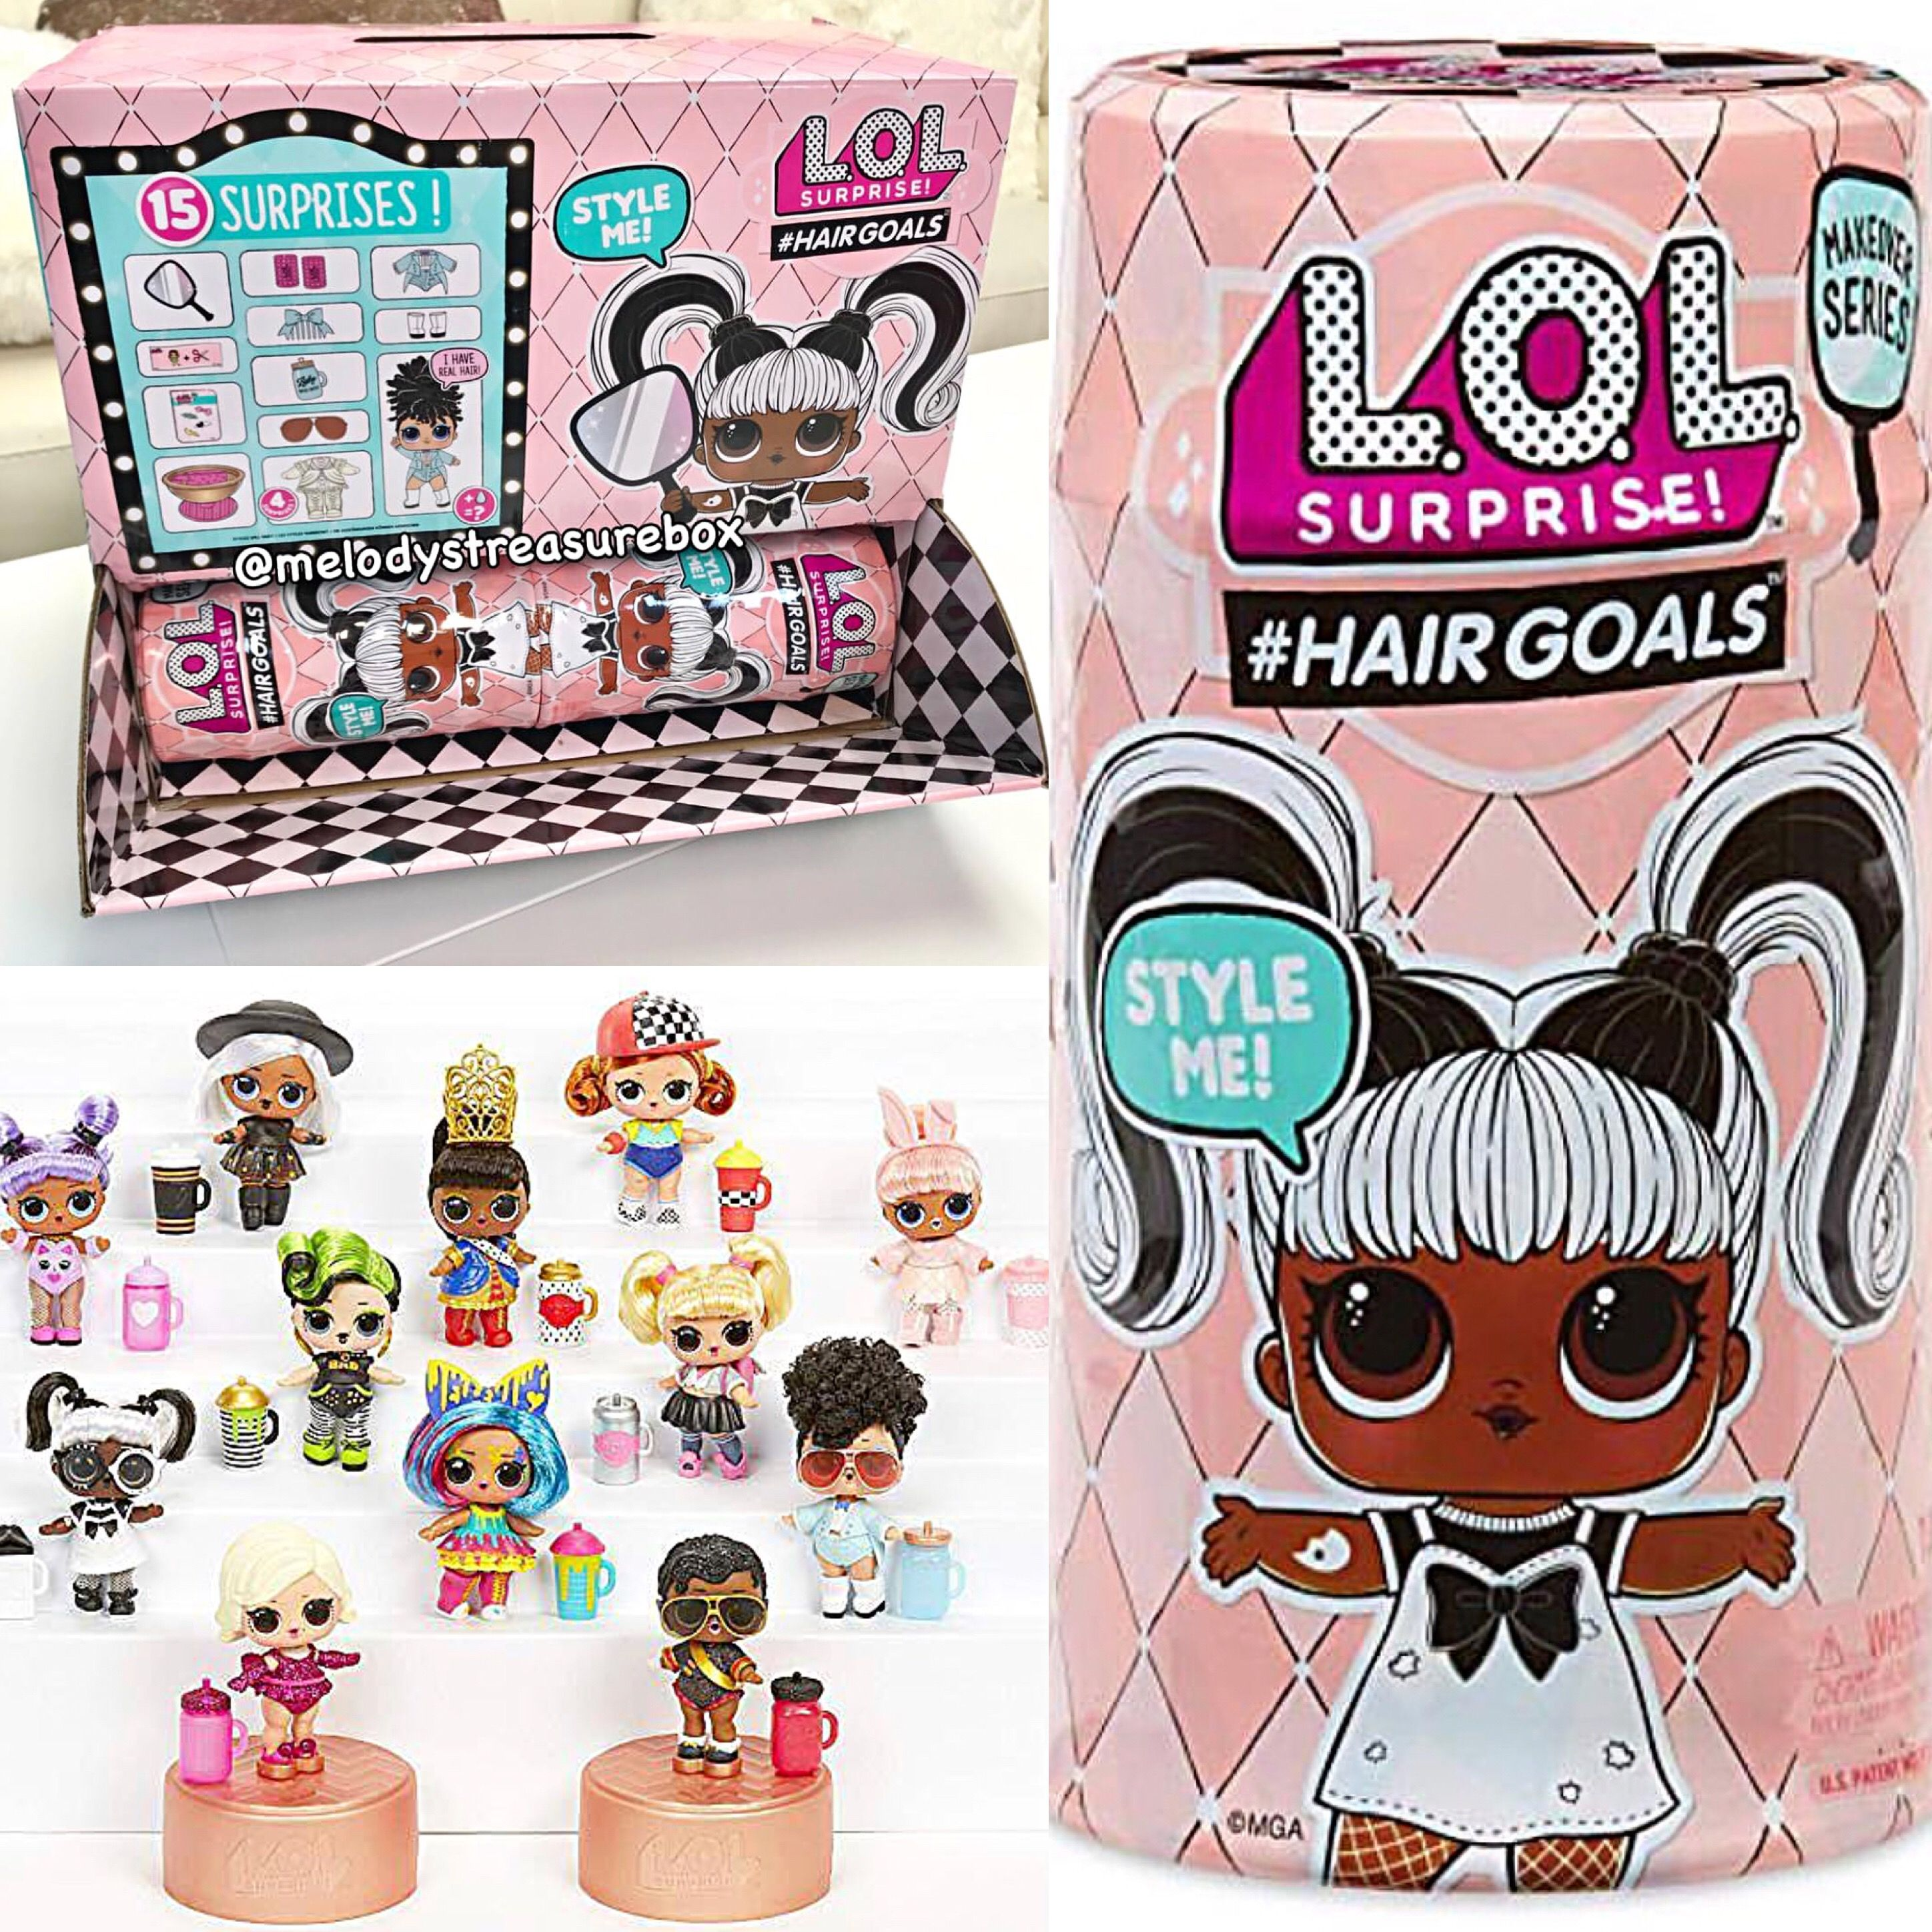 These LOL Surprise Dolls Hairgoals are a MUST HAVE for my